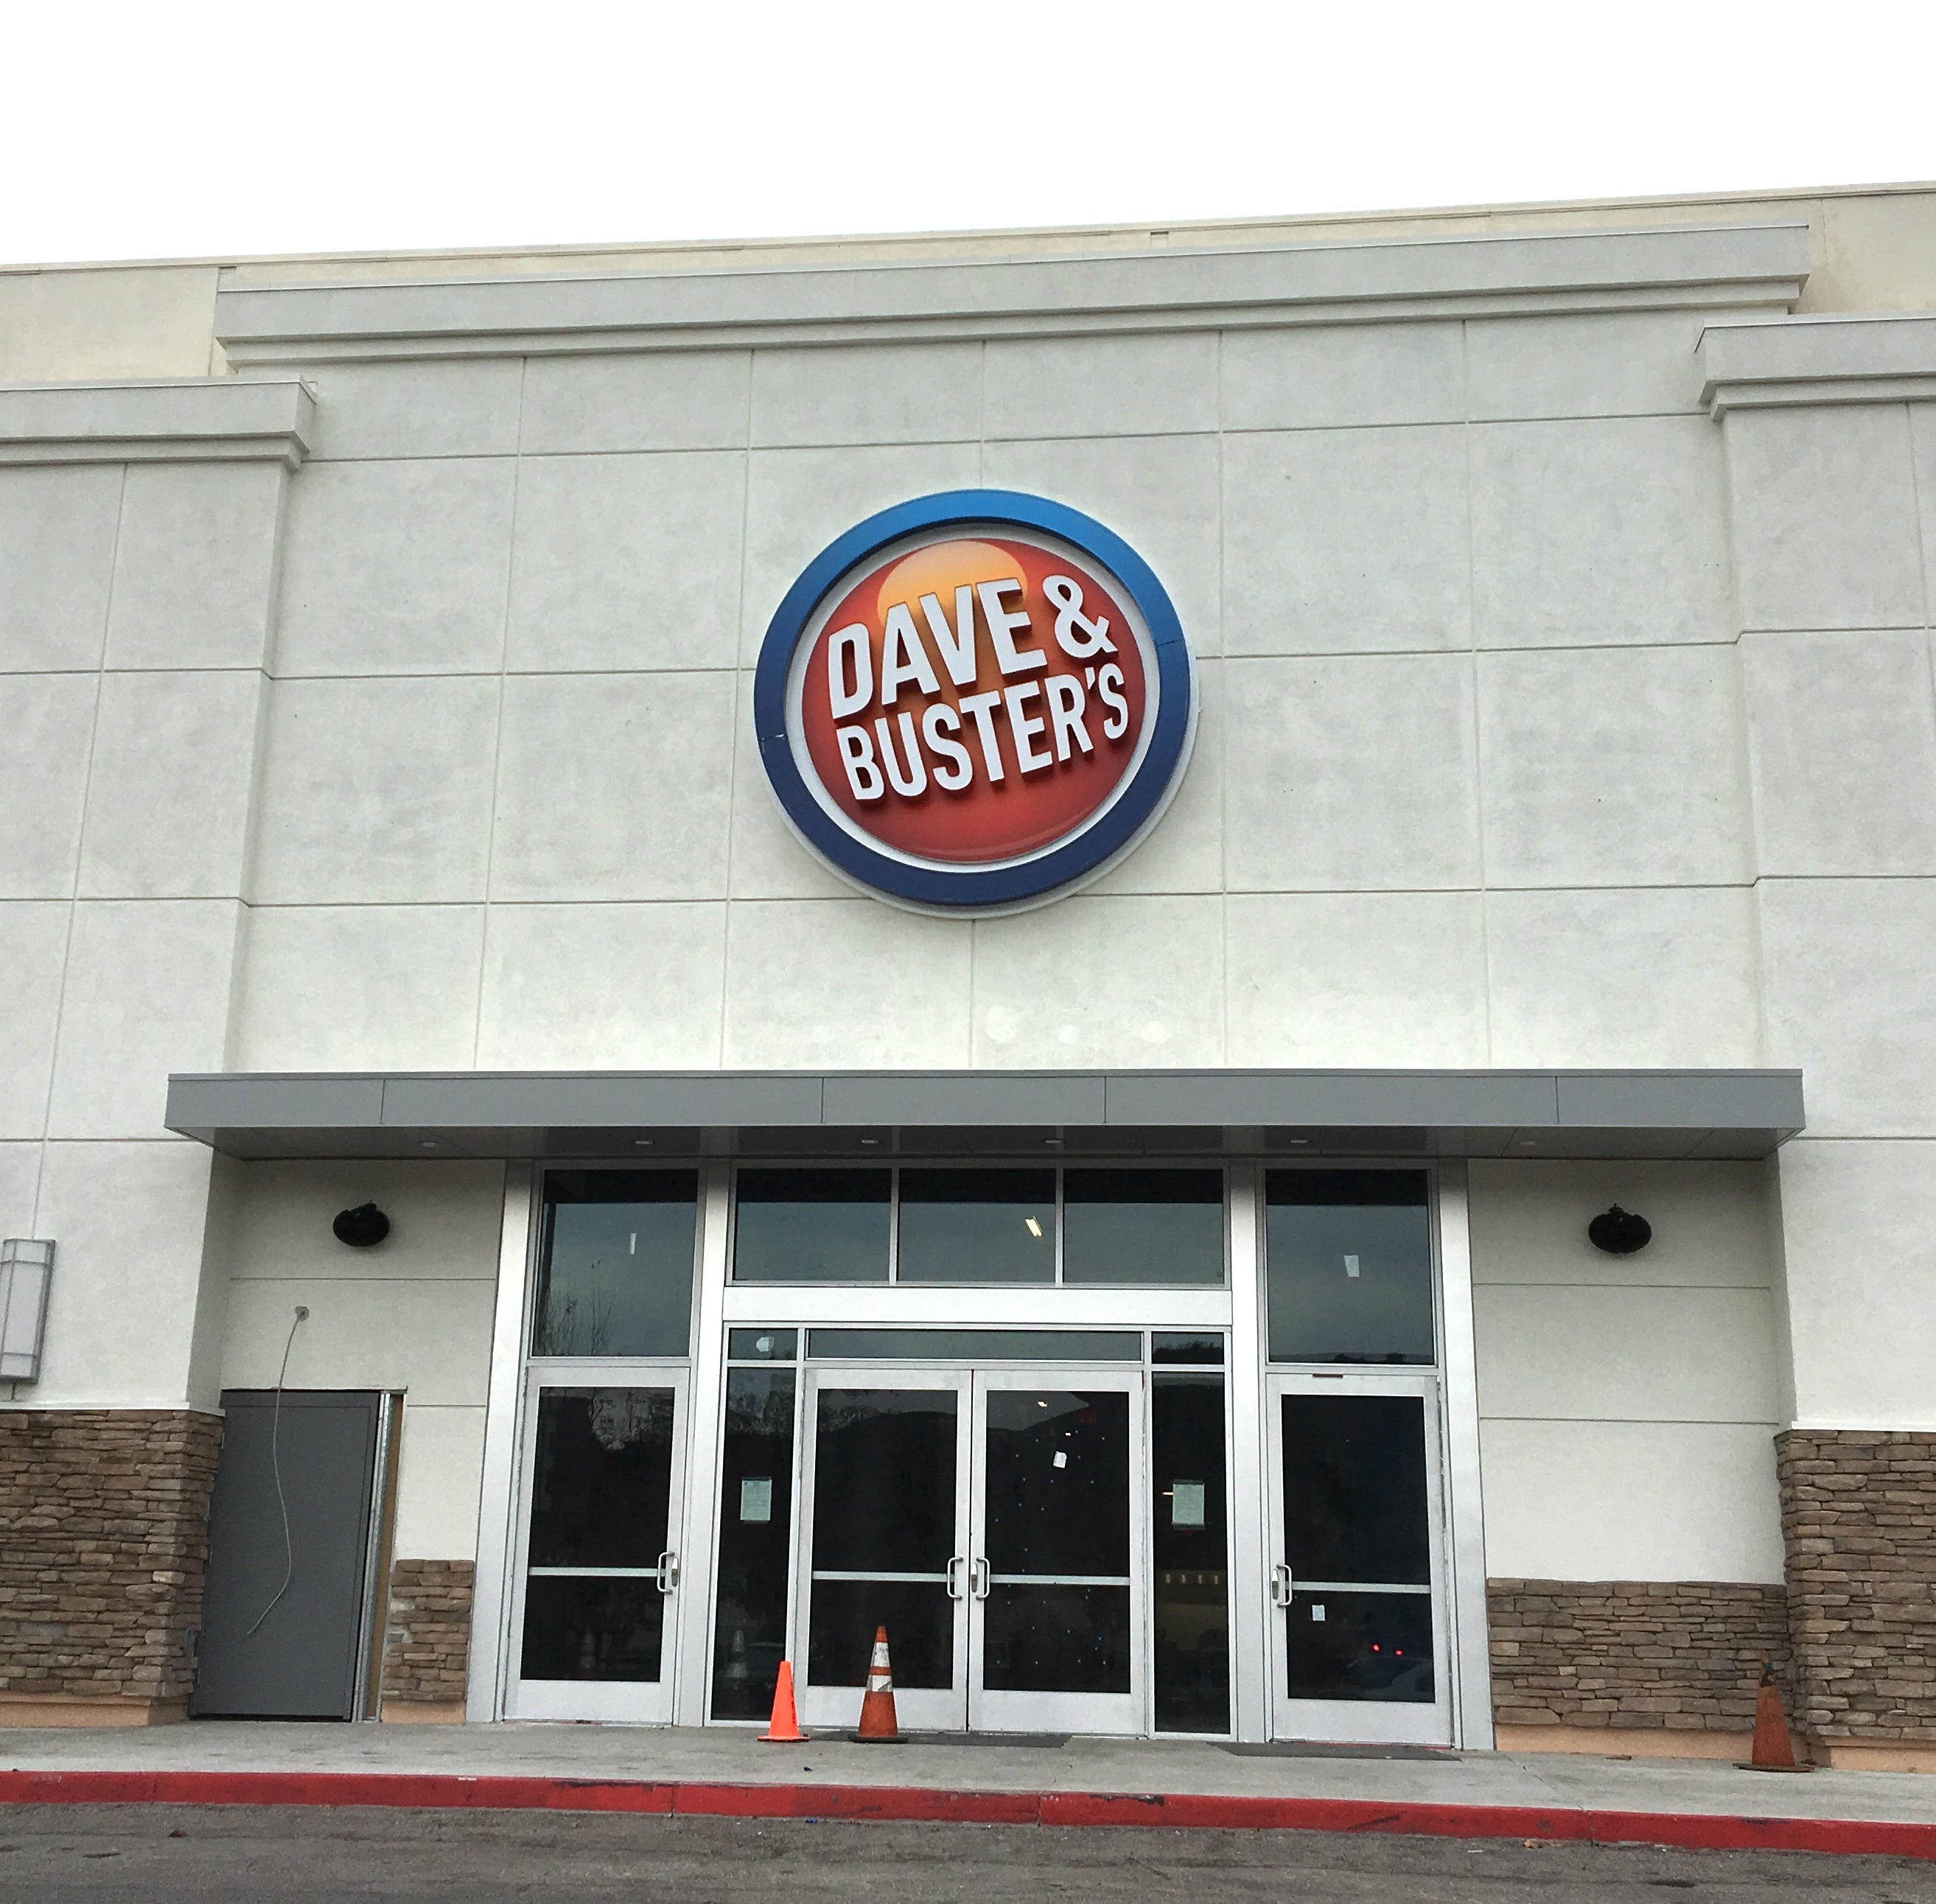 Dave & Buster's announces opening date for Thousand Oaks Iocation